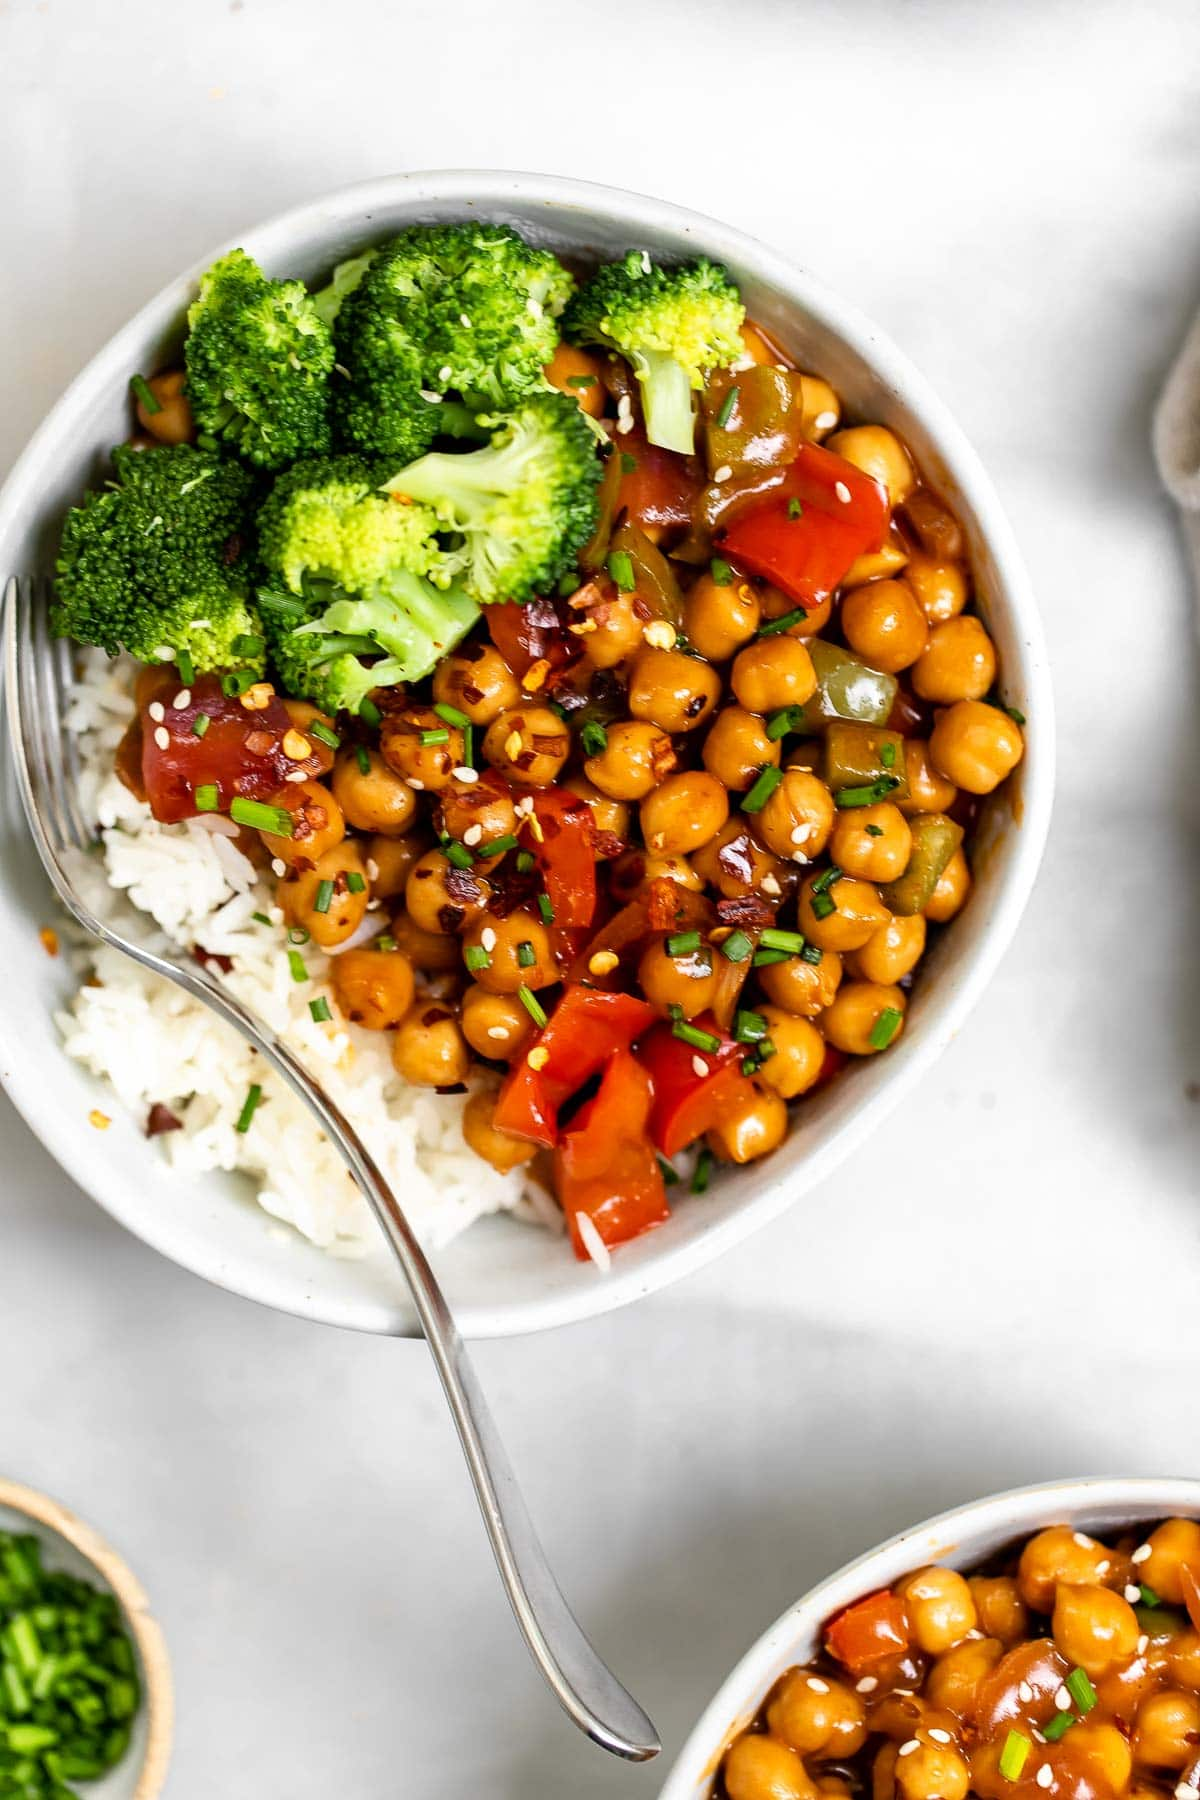 Chickpea buddha bowl with a fork on the side.